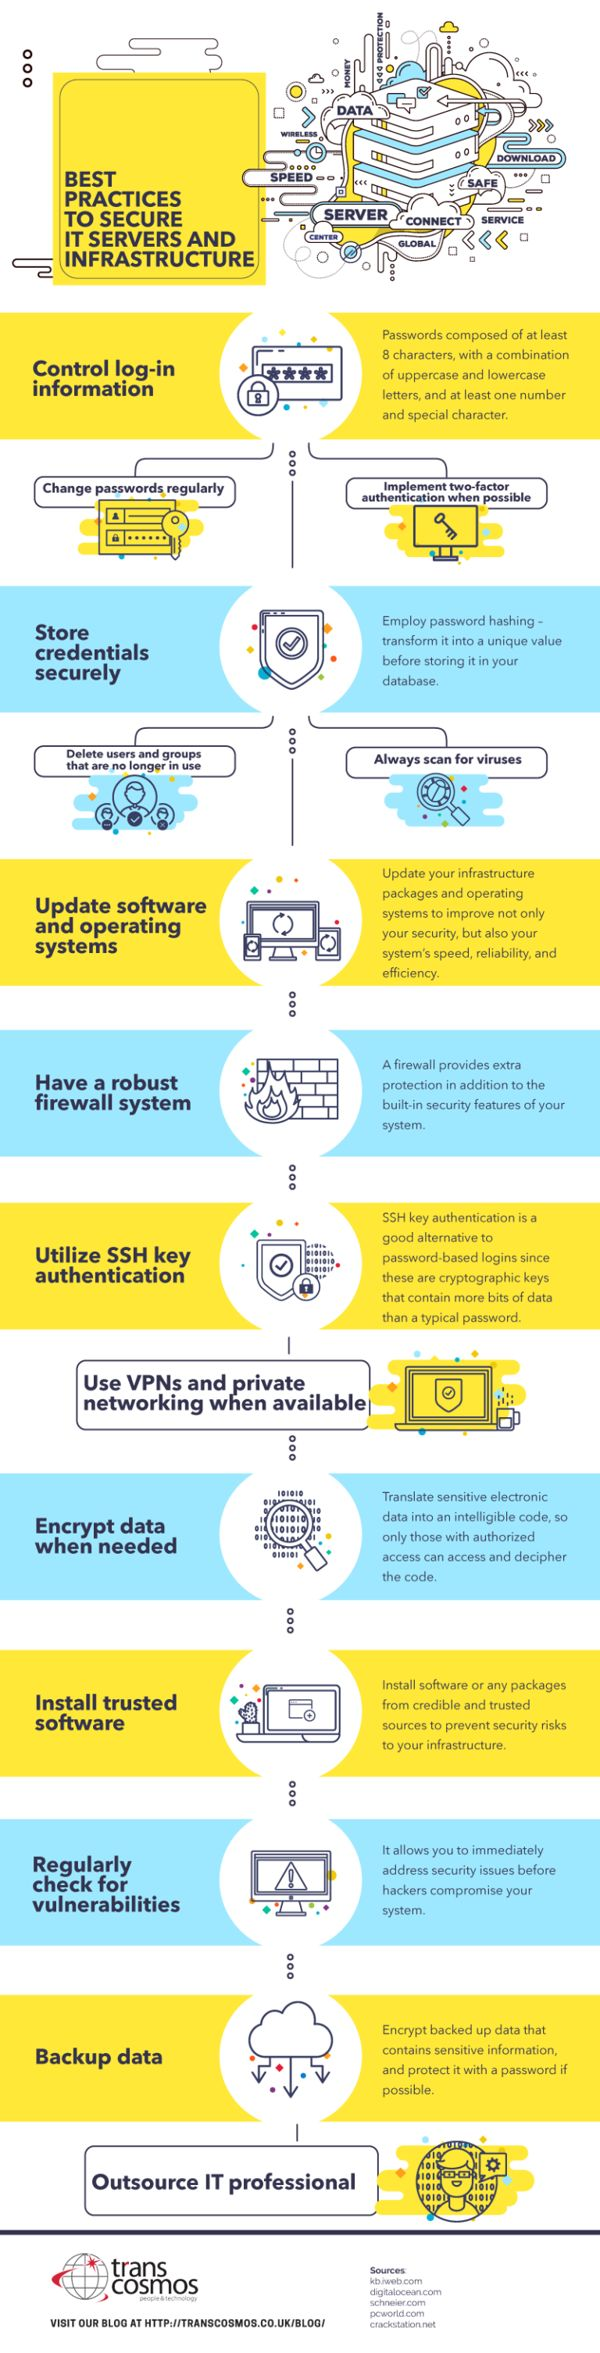 Best Practices to Secure IT Servers and Infrastructure 1